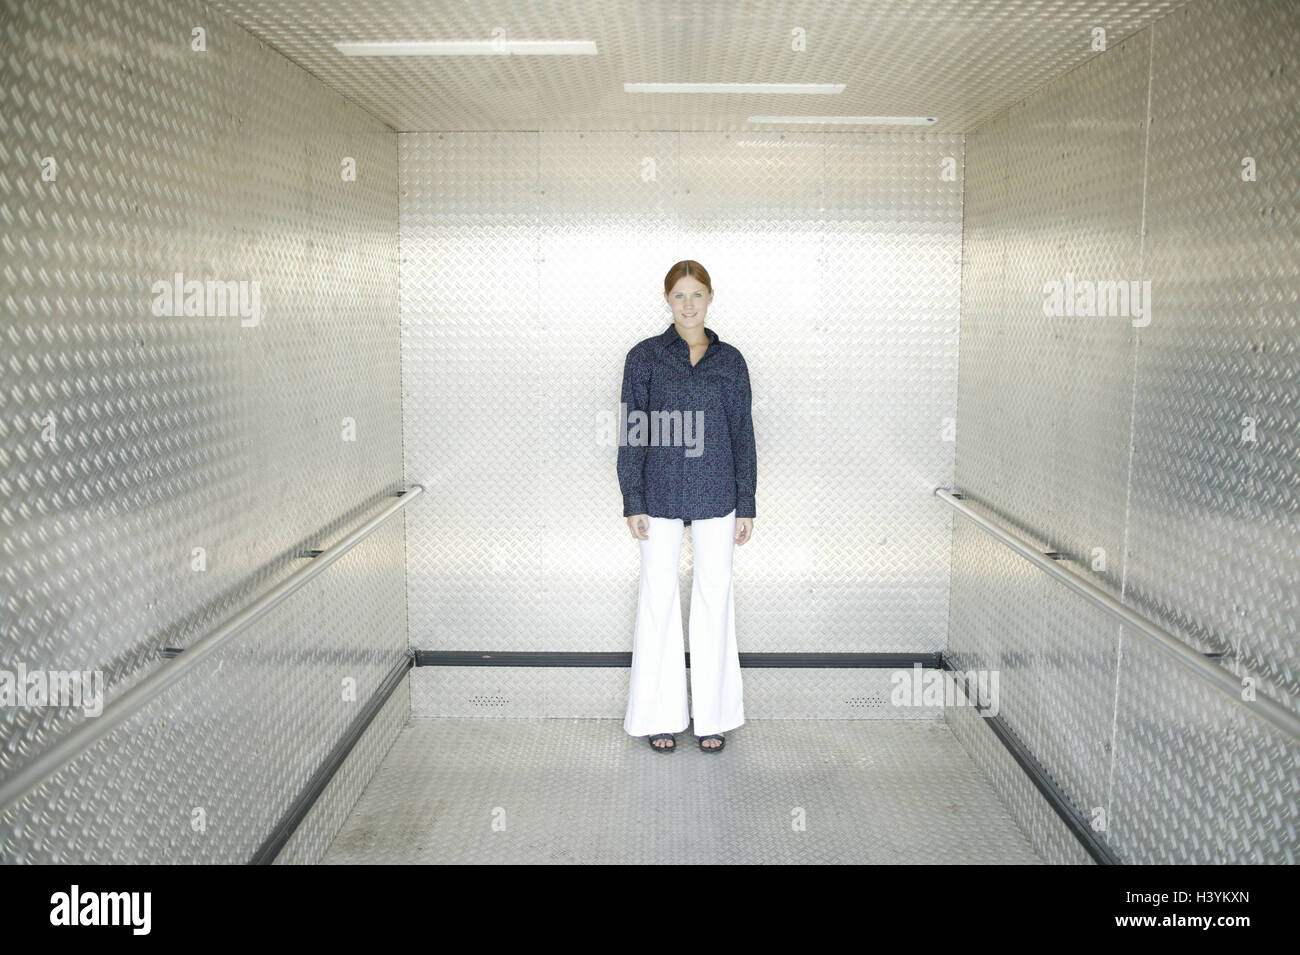 Lift, woman, young, friendly, 15 - 20 years, young persons, trainees, trainee, lift, lift, stand, course, openly, - Stock Image